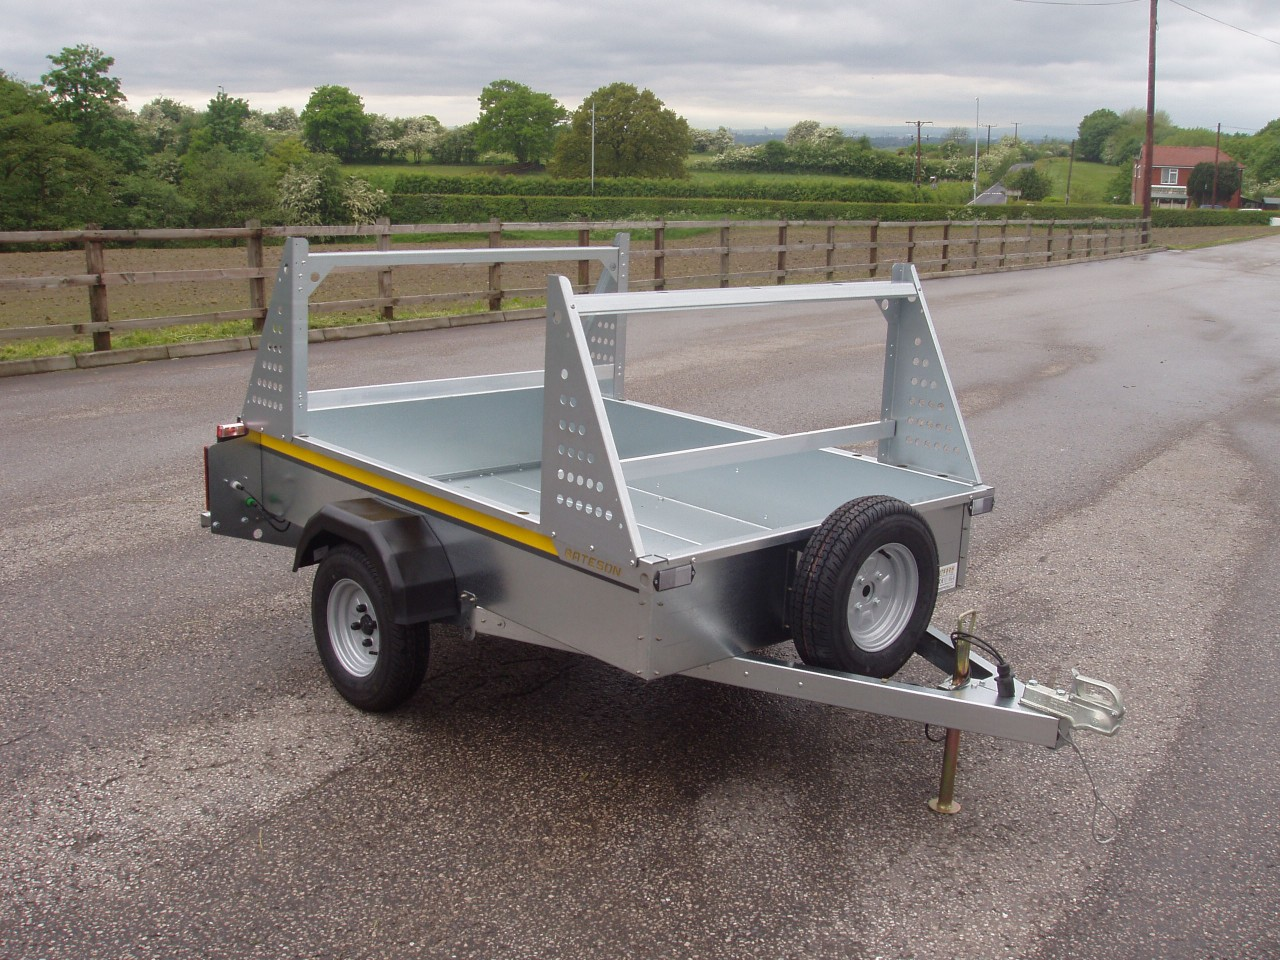 B64 Unbraked Trailer Bateson Trailers